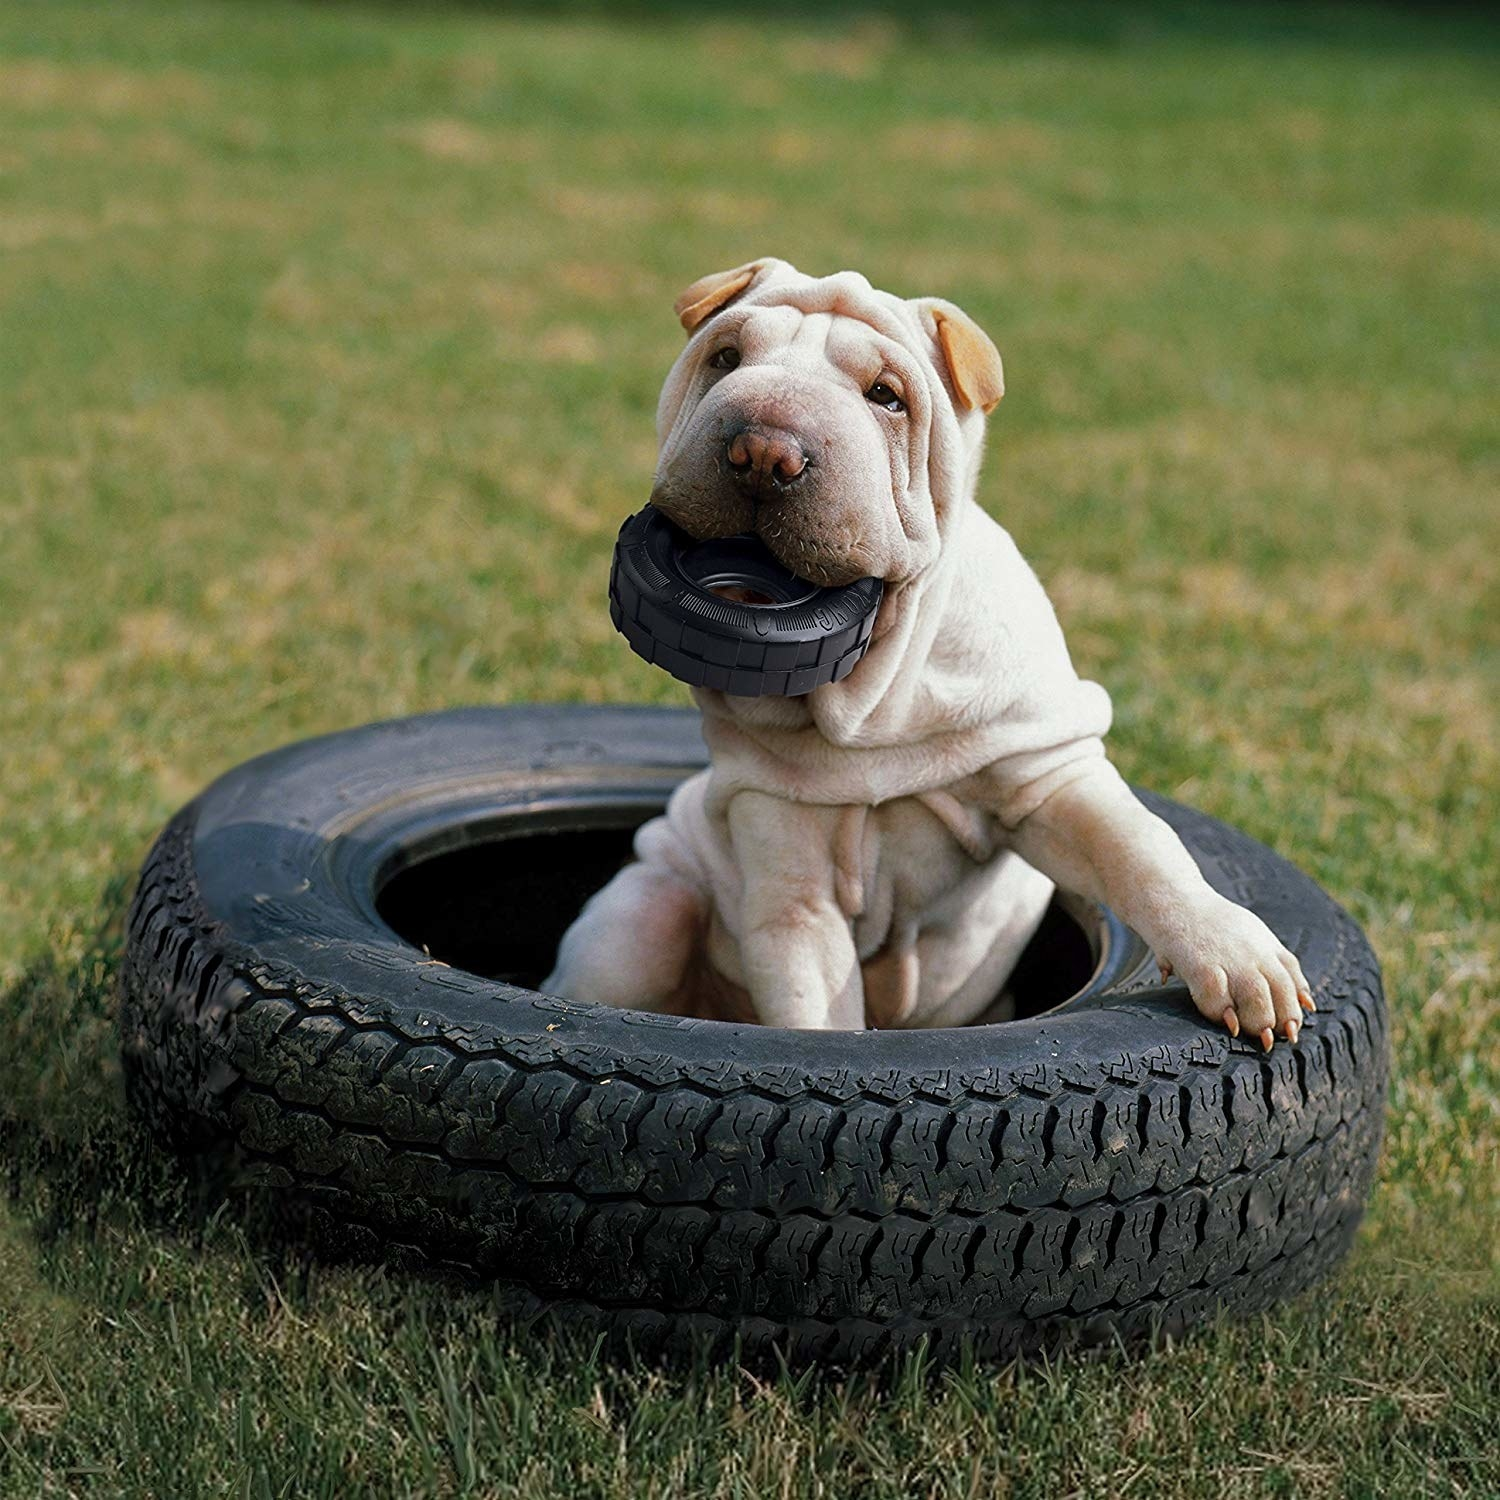 dog playing with the tire-style dog toy